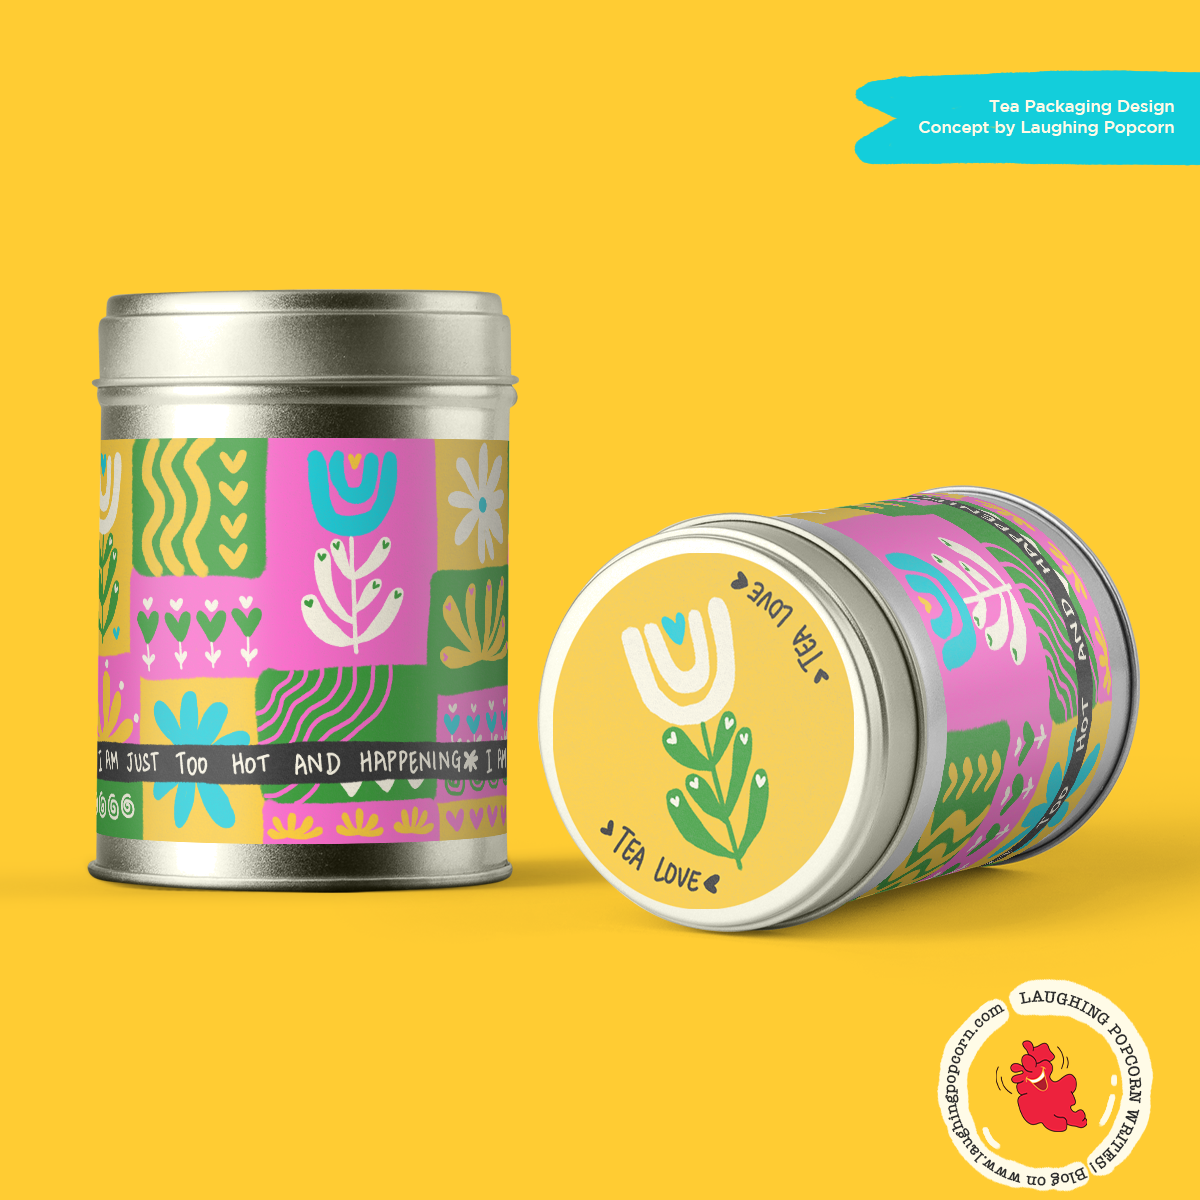 A colorful tea branding concept by Laughing Popcorn